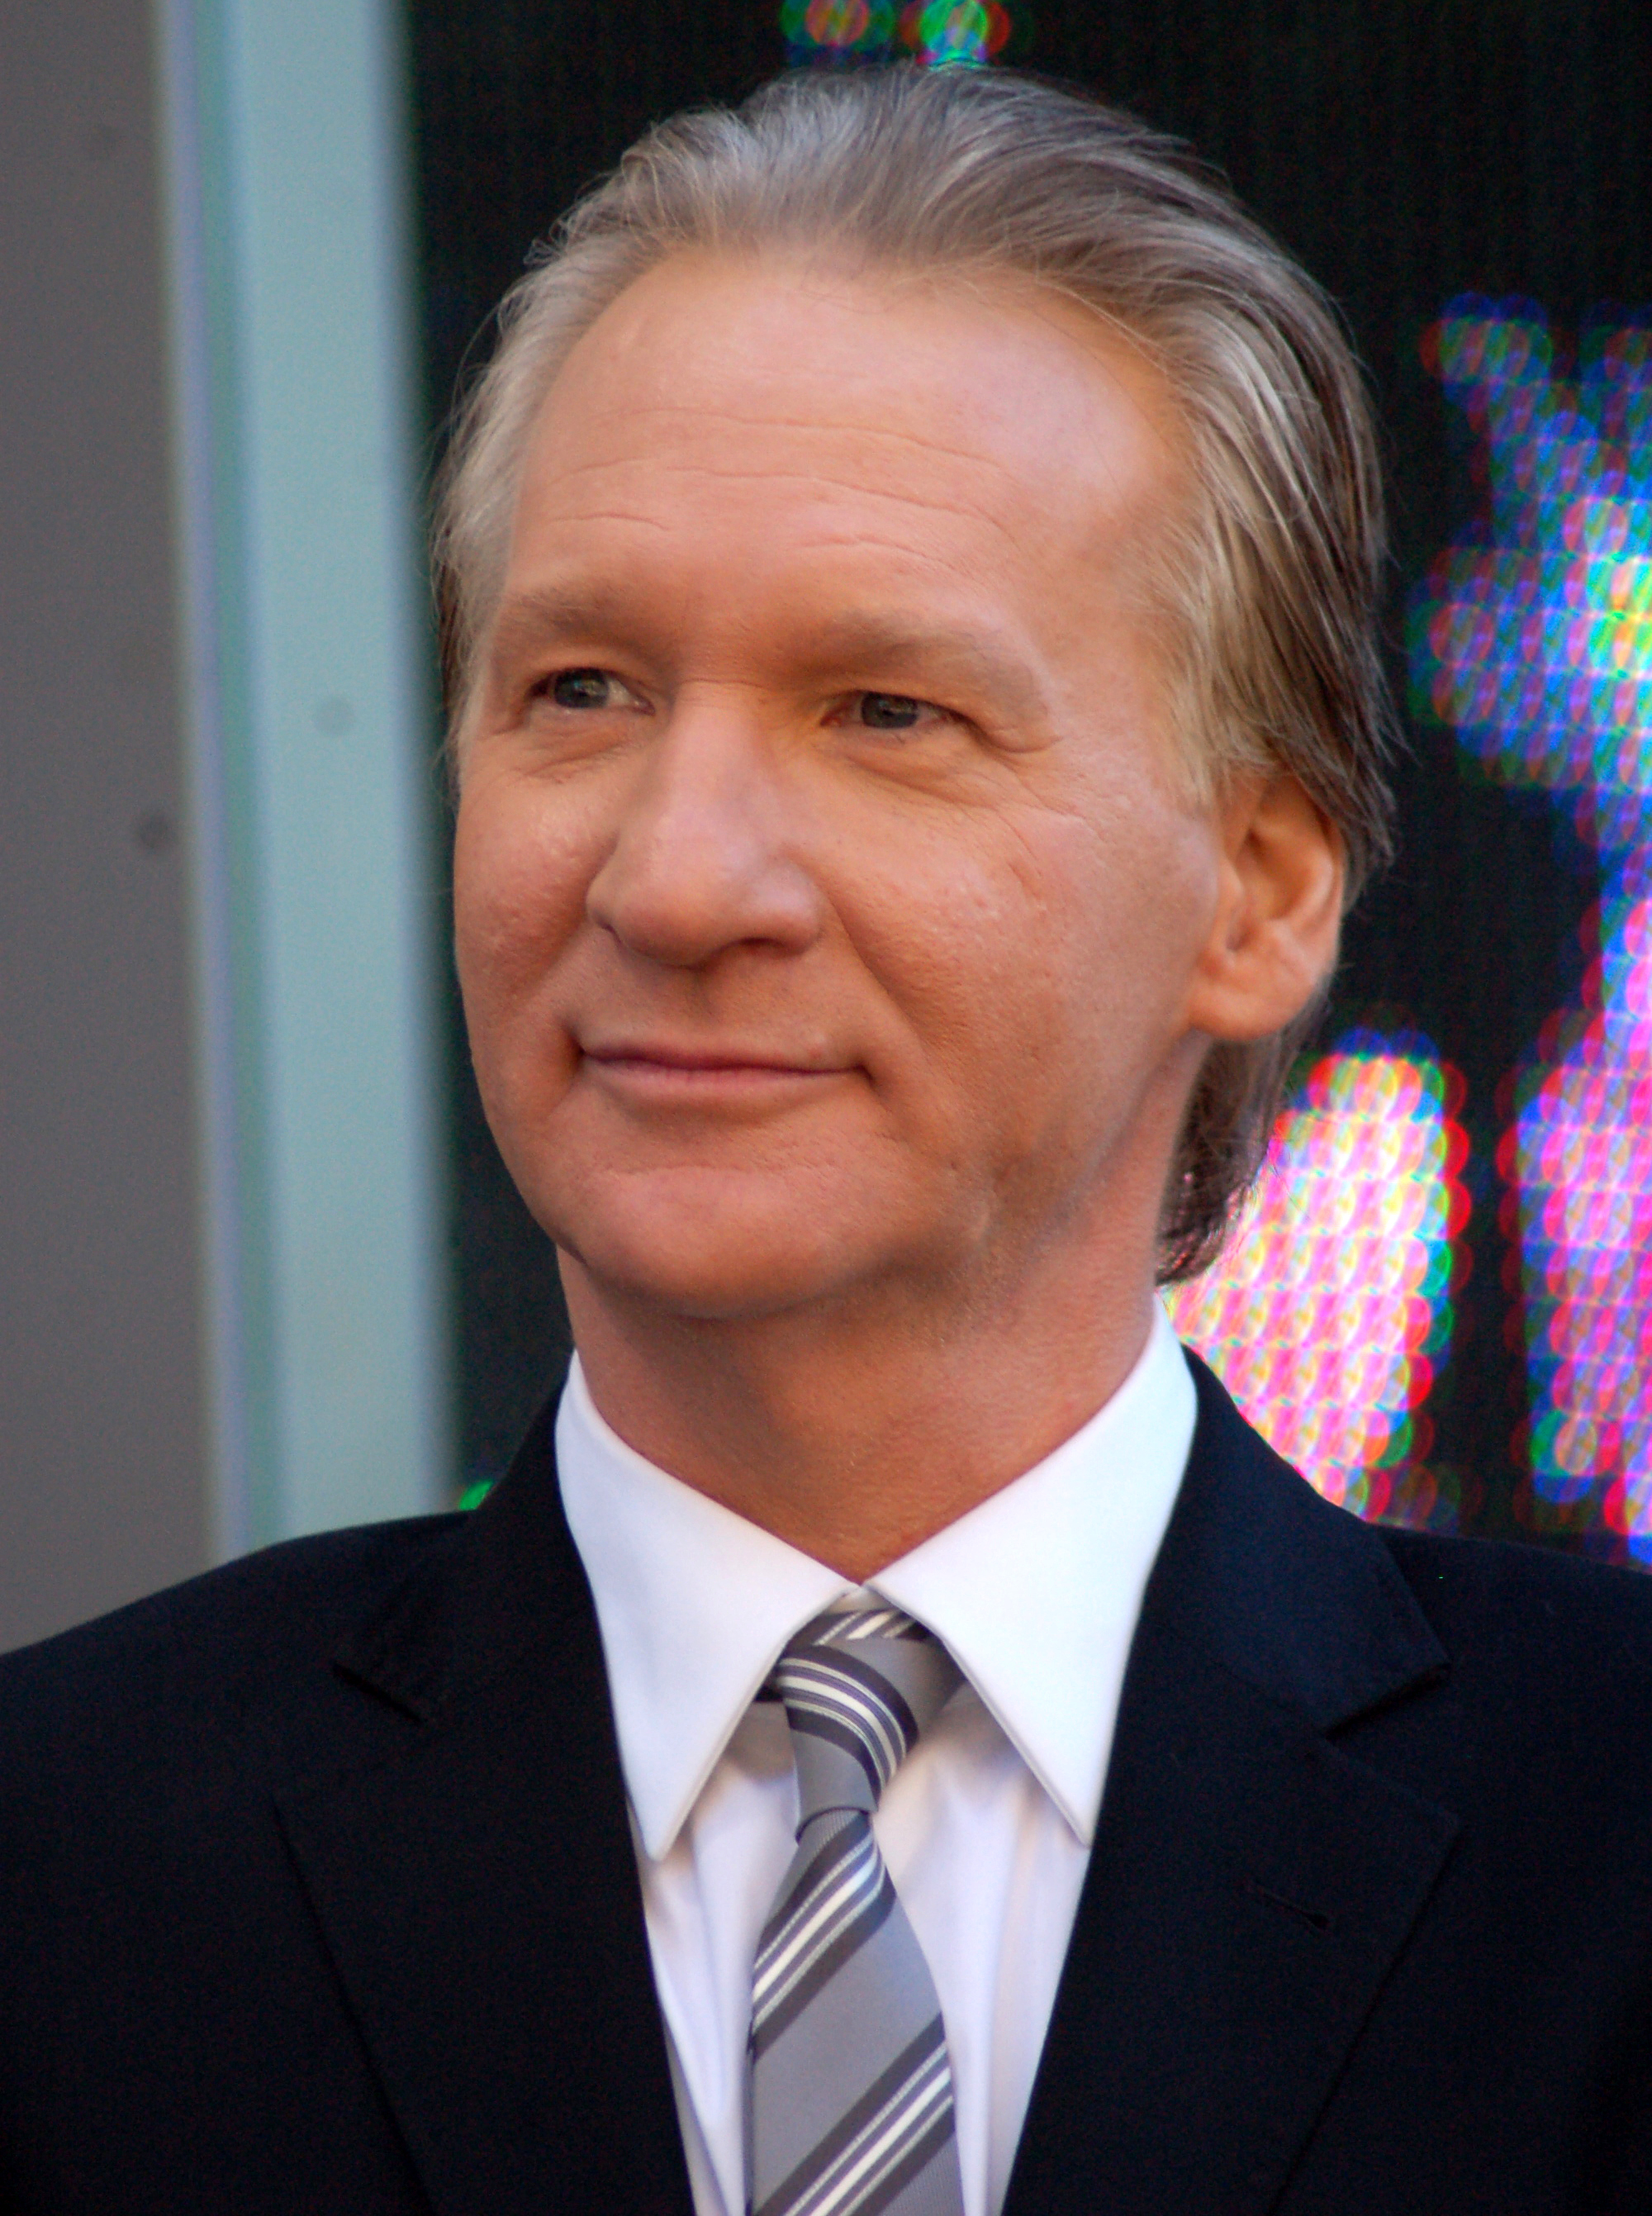 The 62-year old son of father William Maher, Sr. and mother Julie Maher, 173 cm tall Bill Maher in 2018 photo